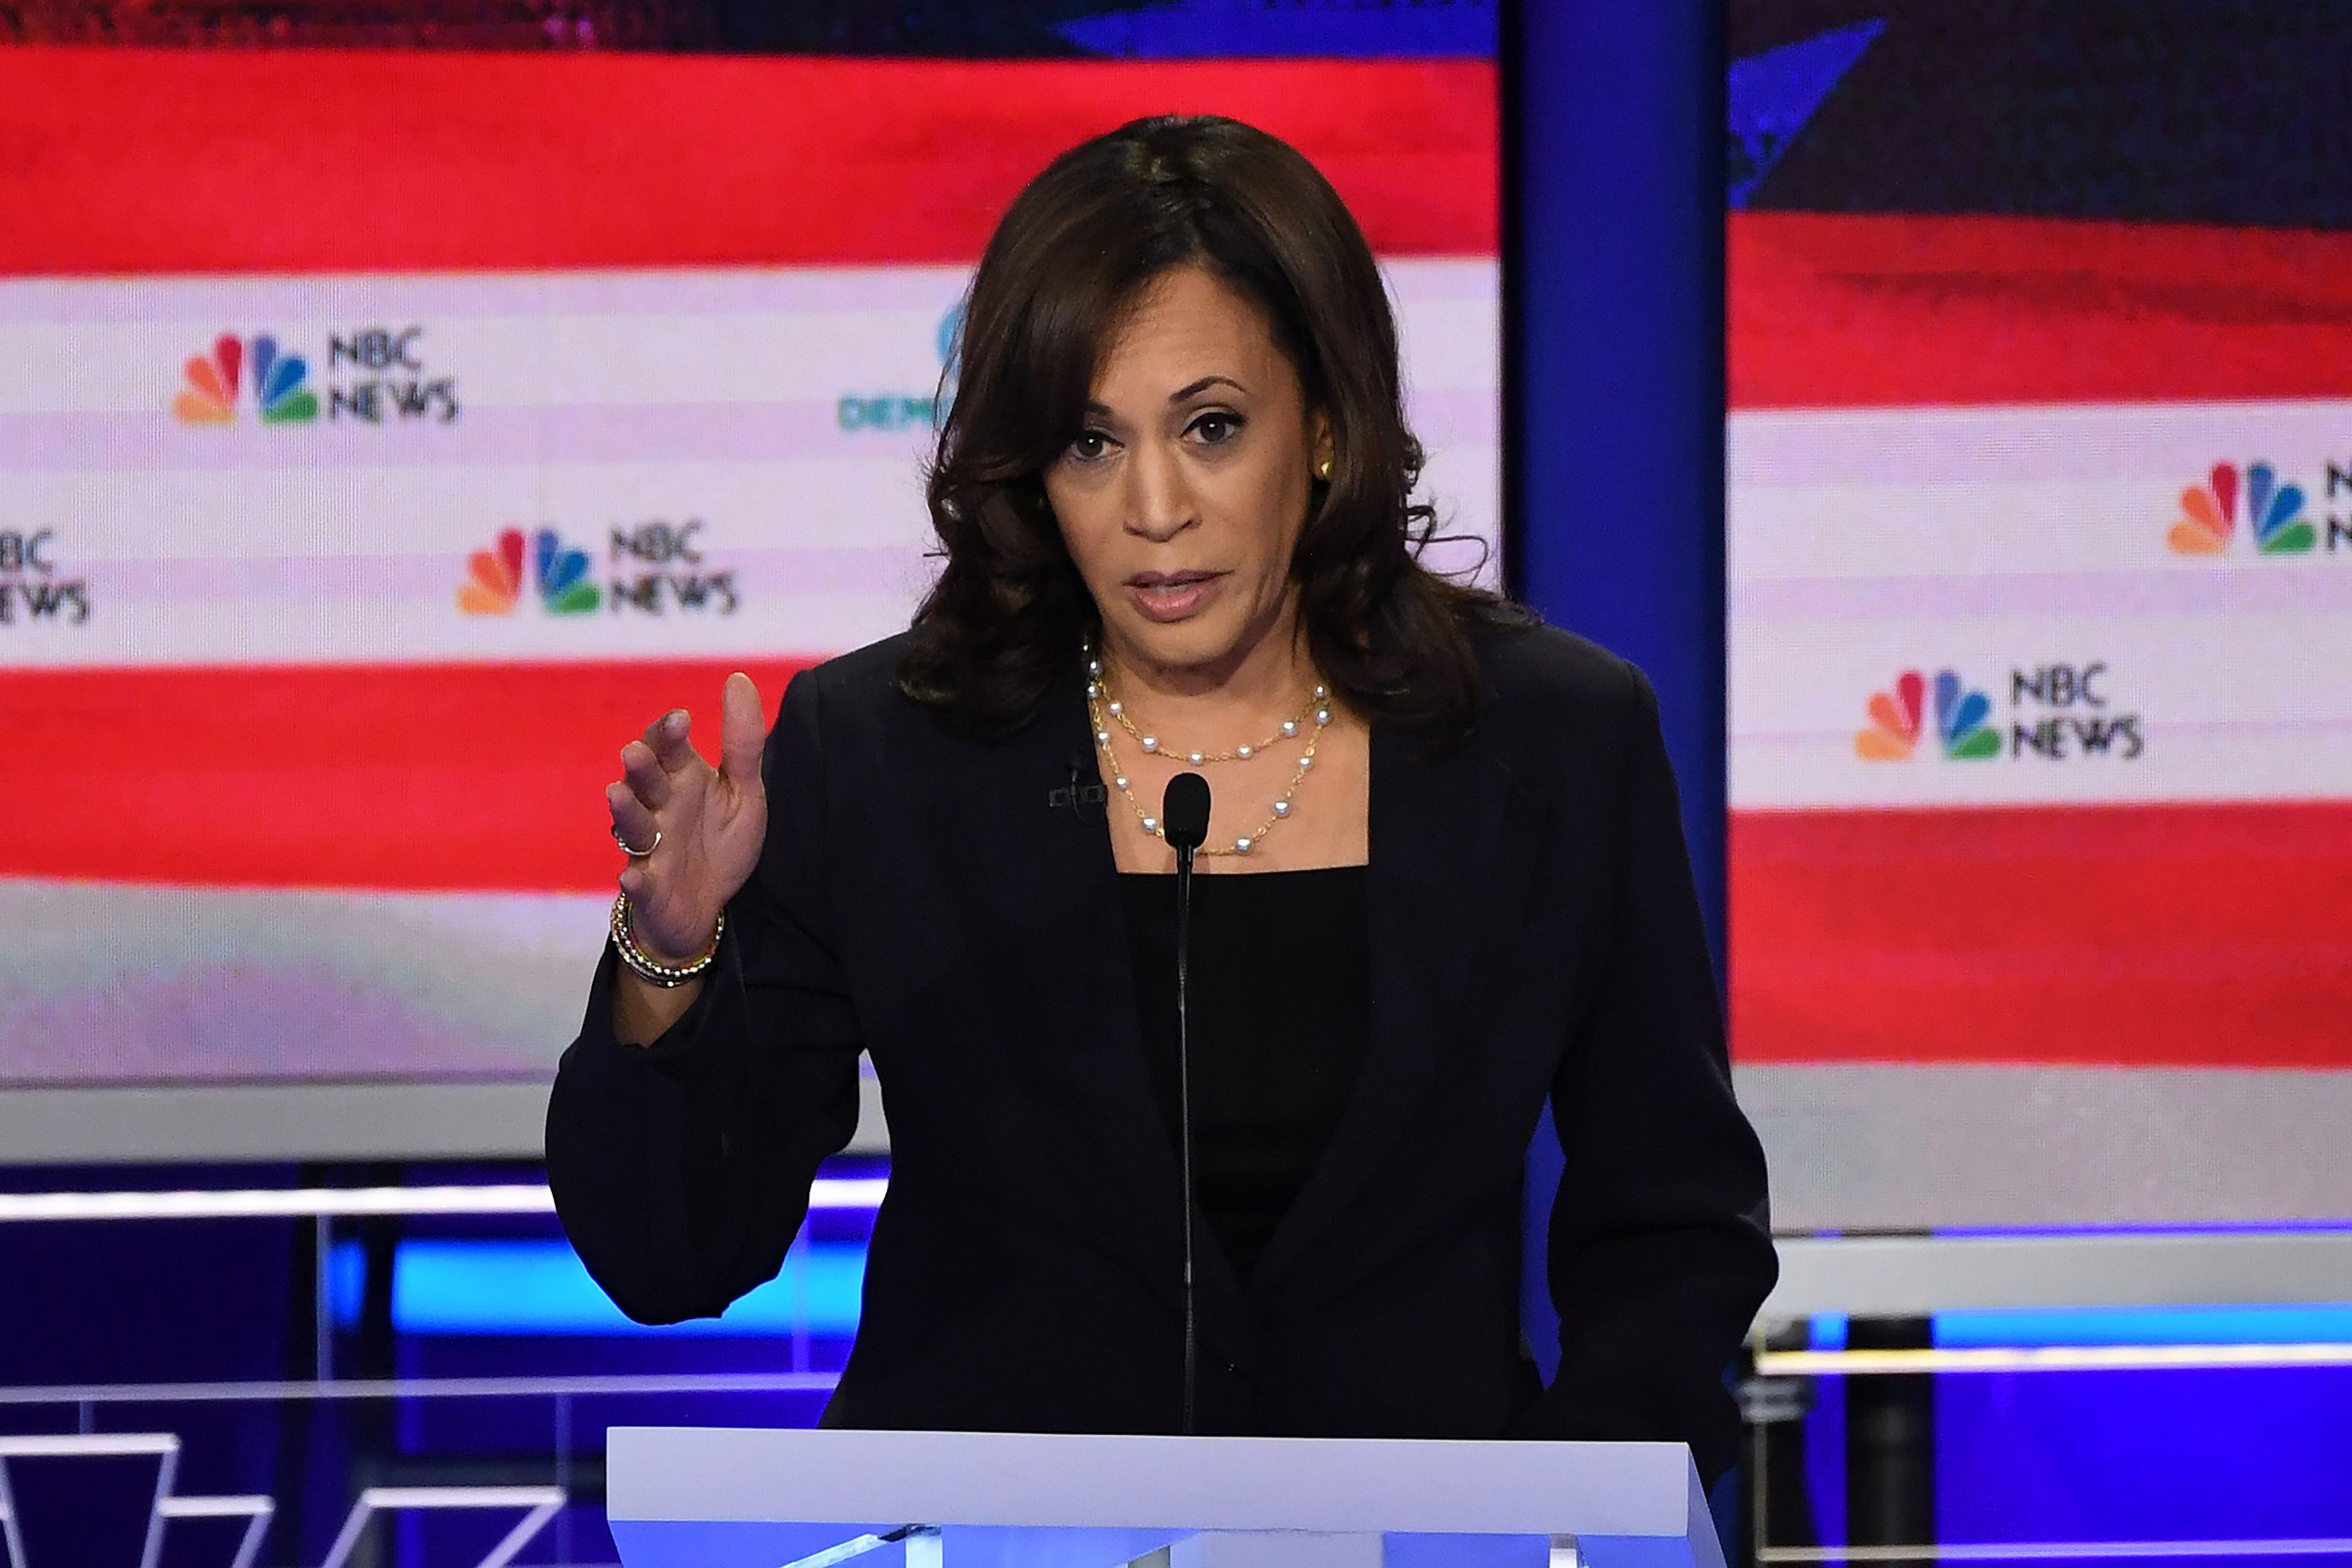 Democratic presidential hopeful US Senator for California Kamala Harris speaks during the second Democratic primary debate of the 2020 presidential campaign season hosted by NBC News at the Adrienne Arsht Center for the Performing Arts in Miami, Florida, June 27, 2019.